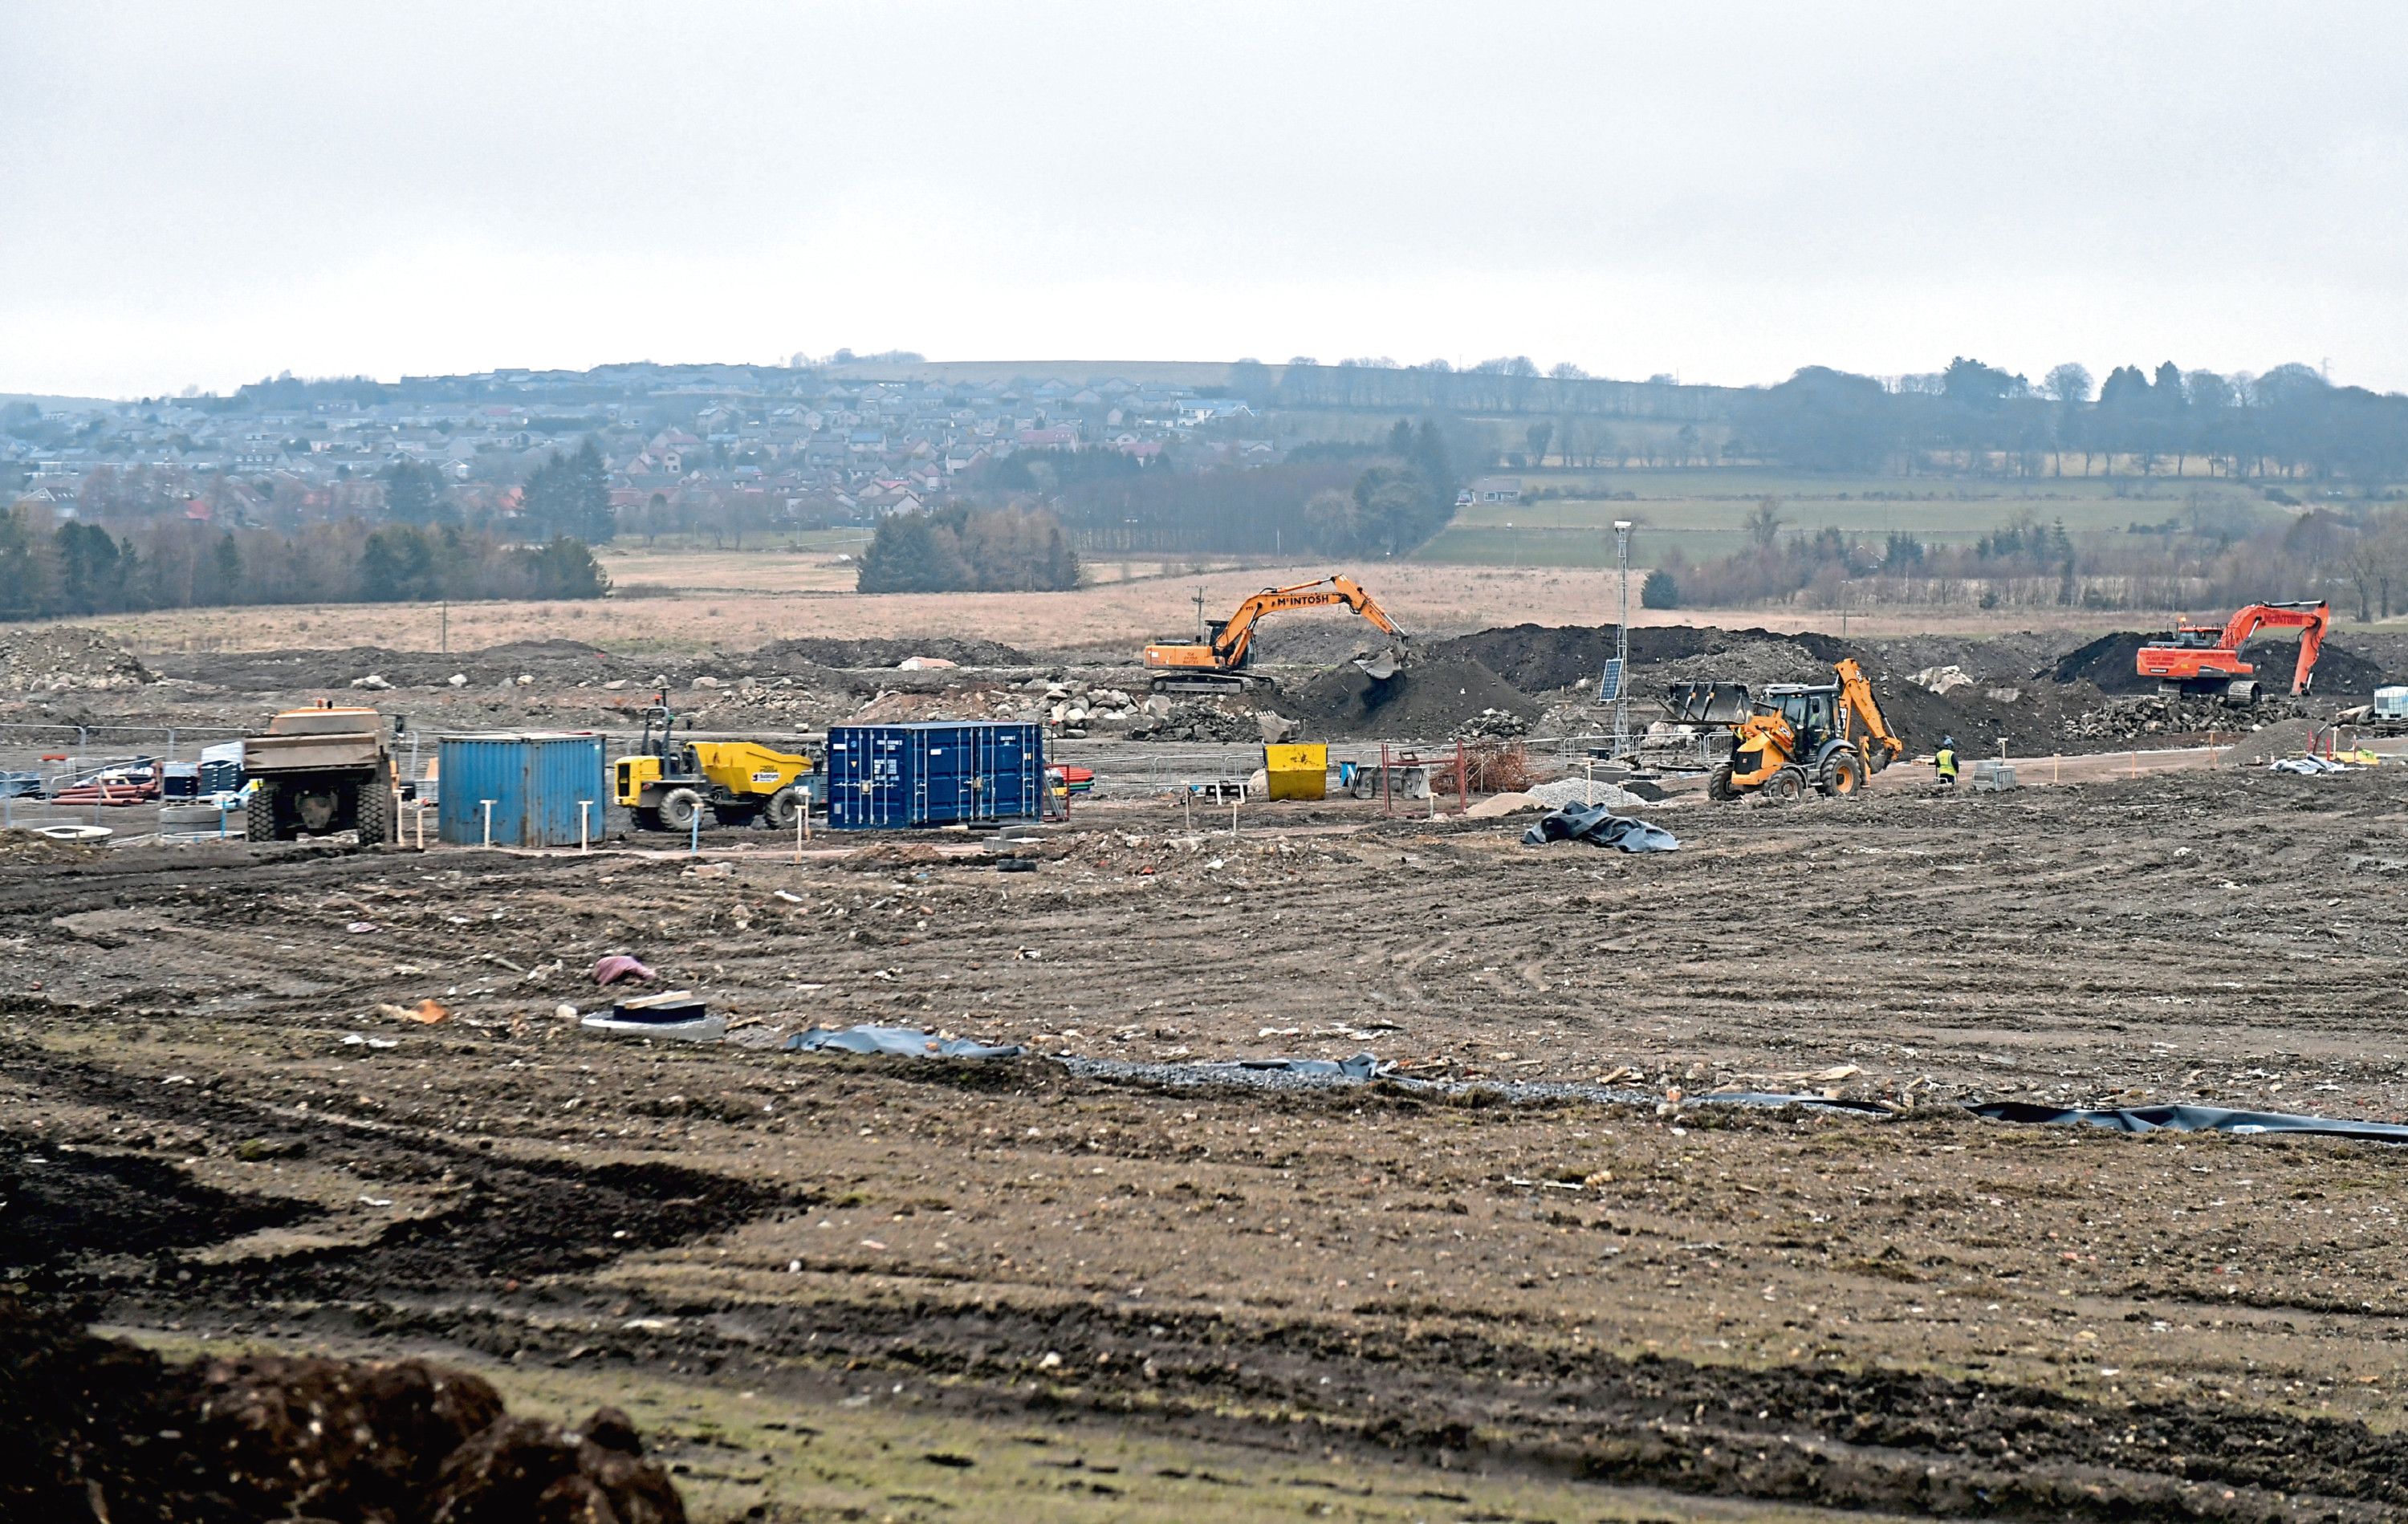 Work is going on at the new Kingsford Stadium site.